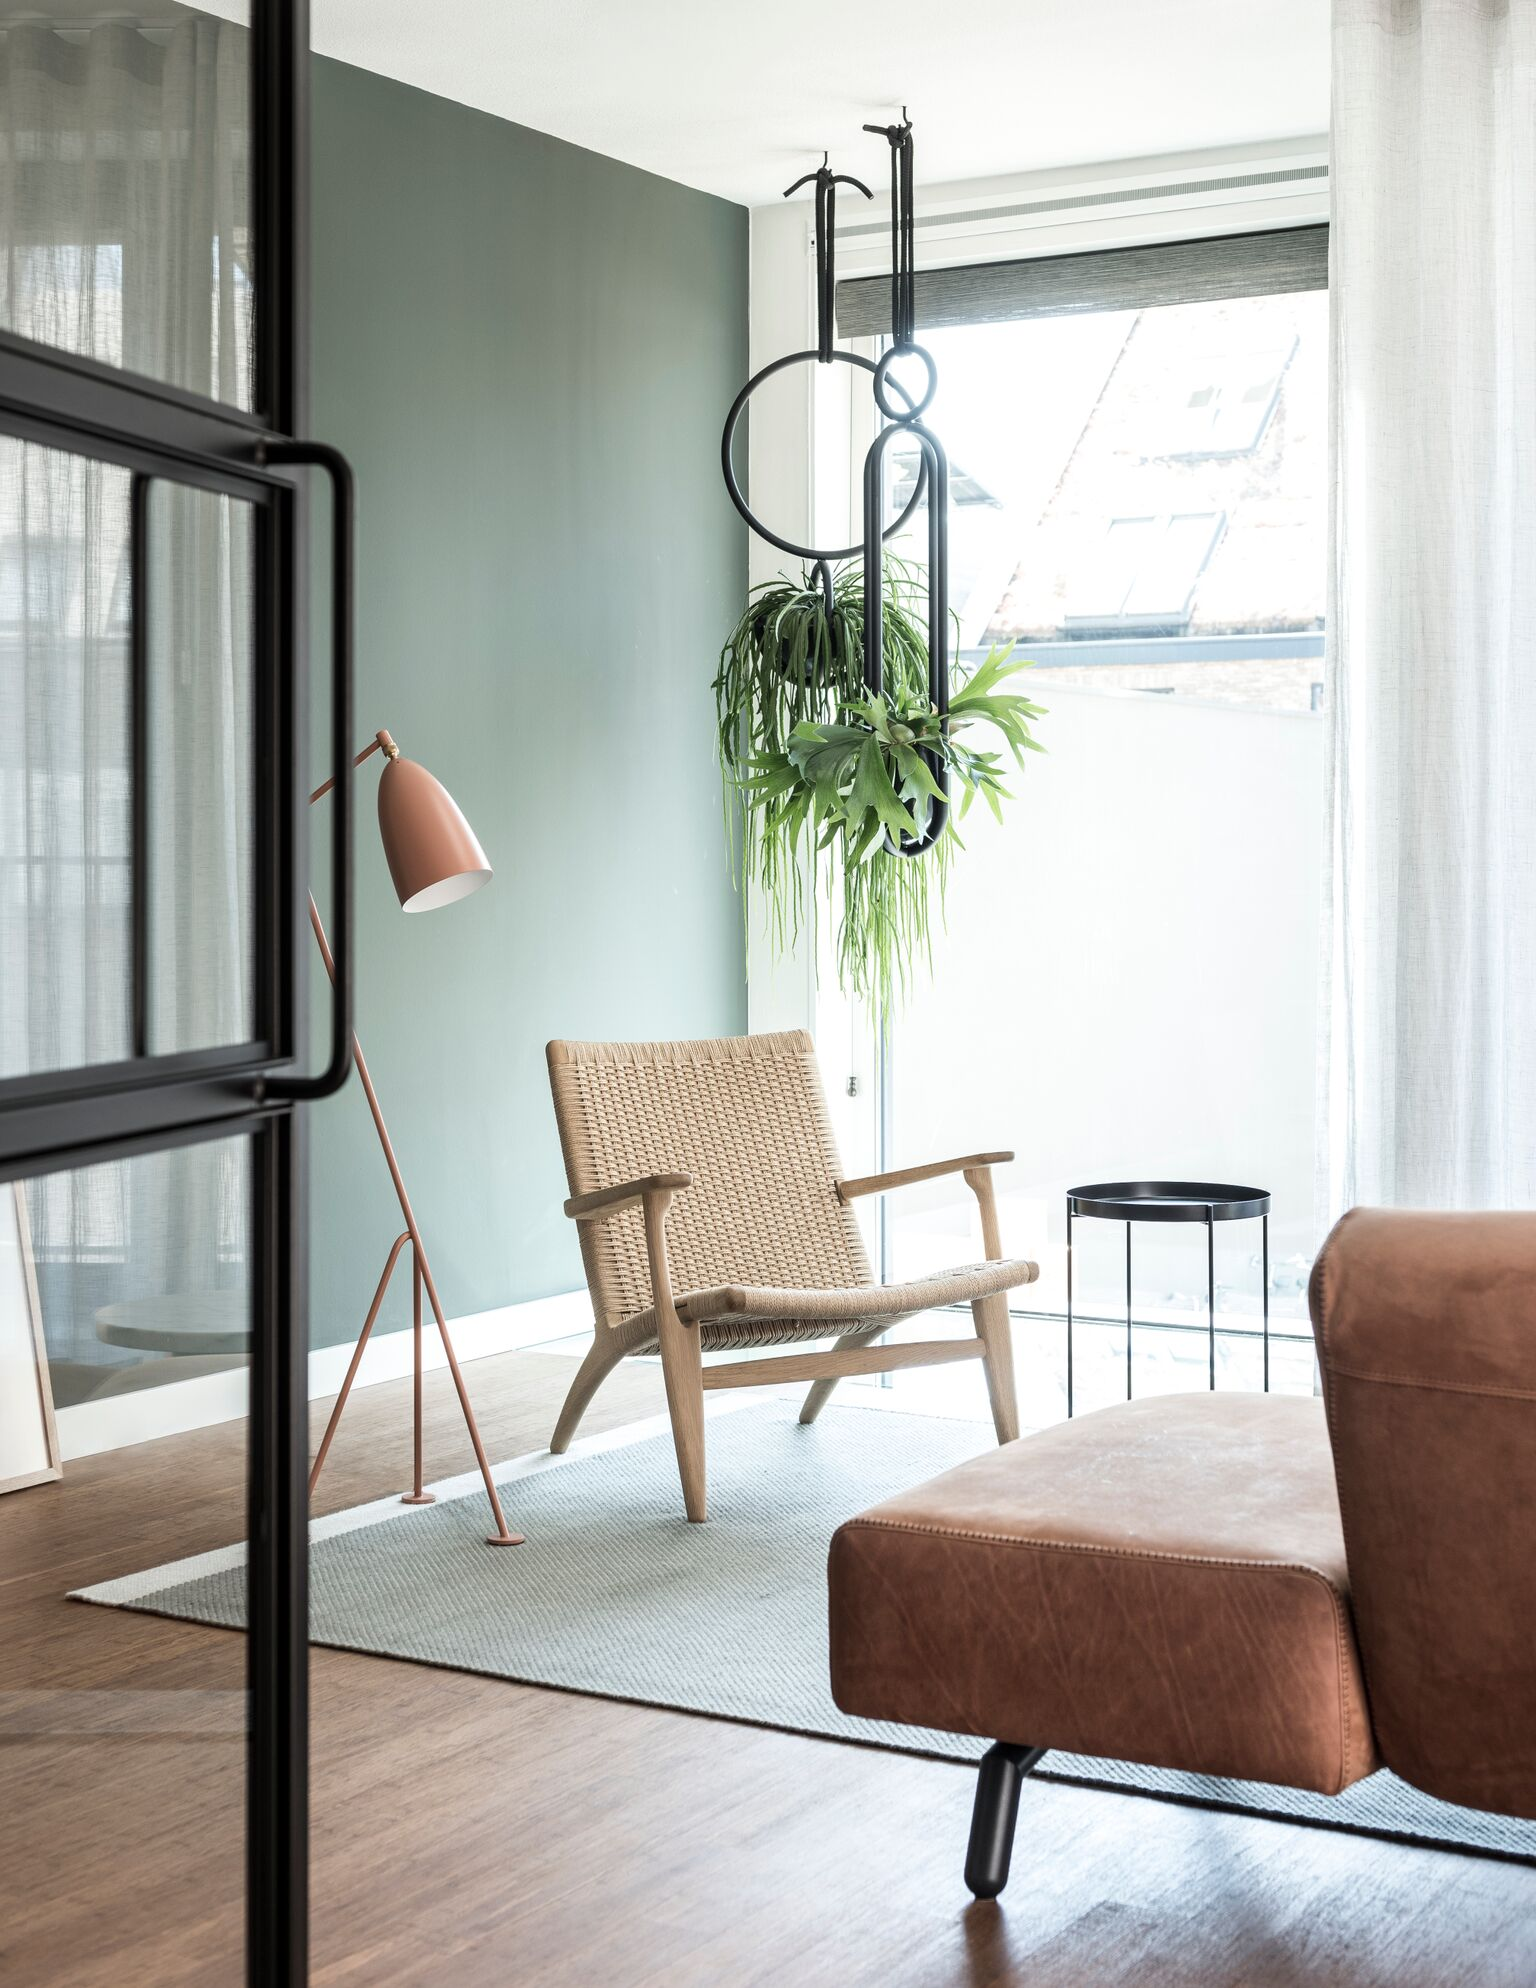 interiorproject_Amsterdam-april and May-02.jpg